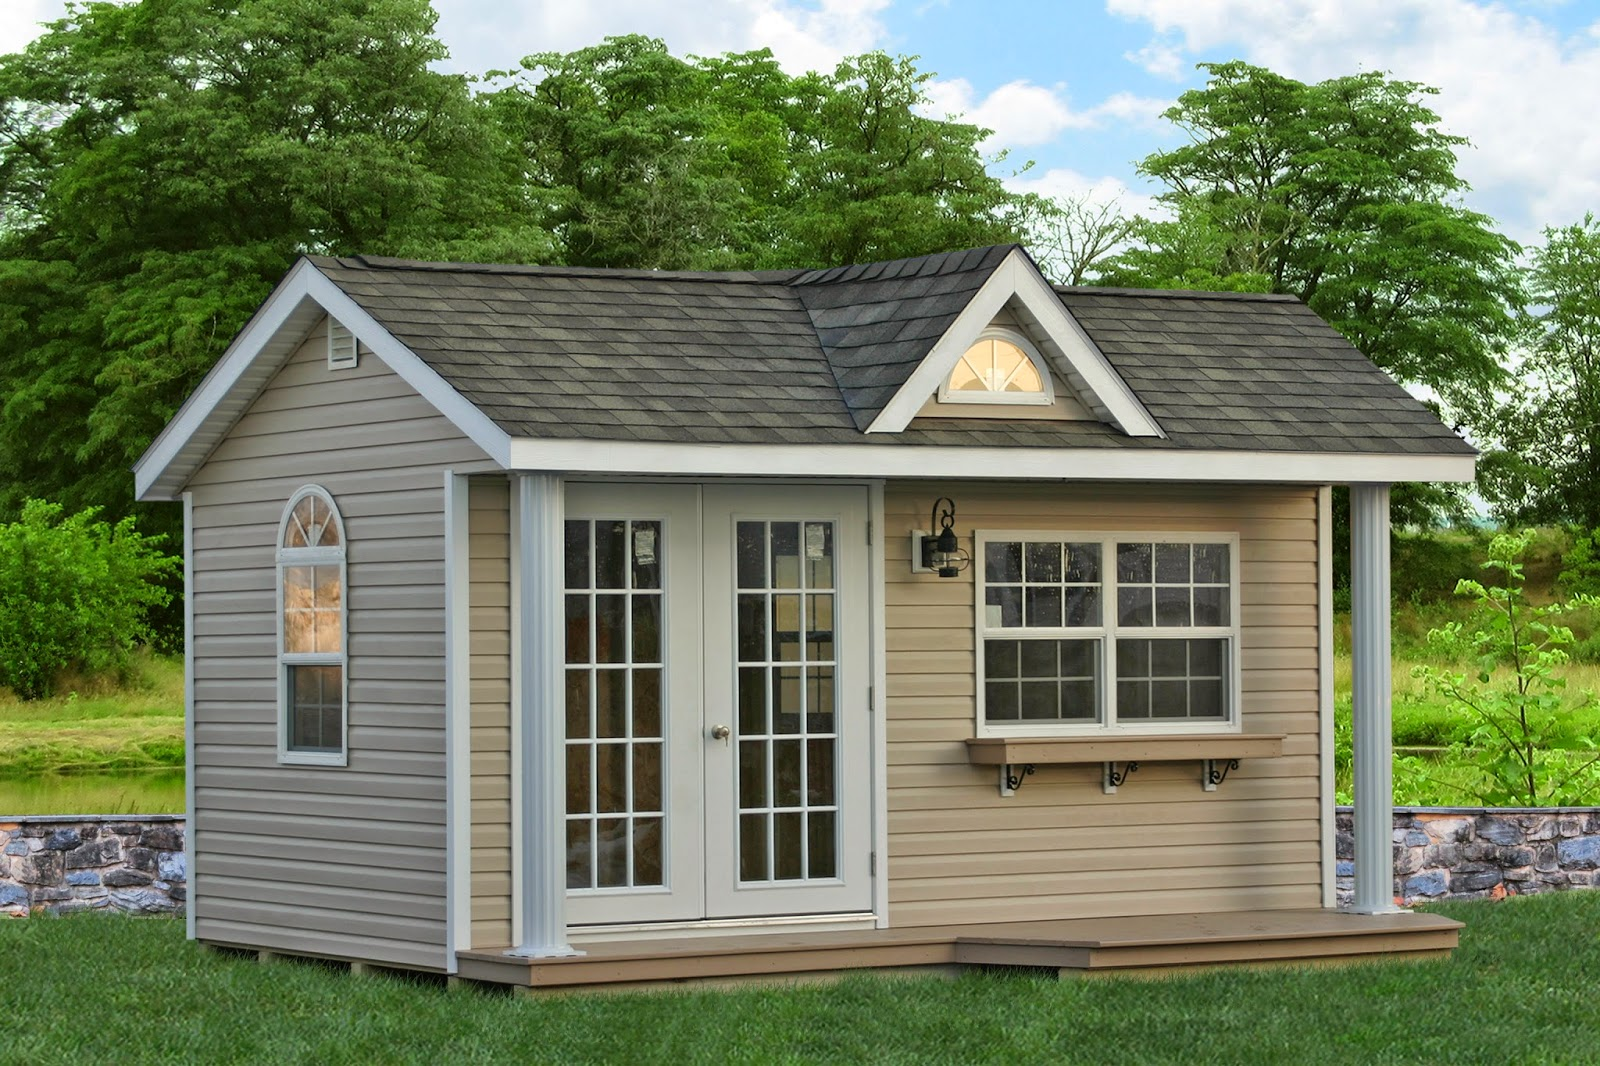 New Home Office Sheds For Sale